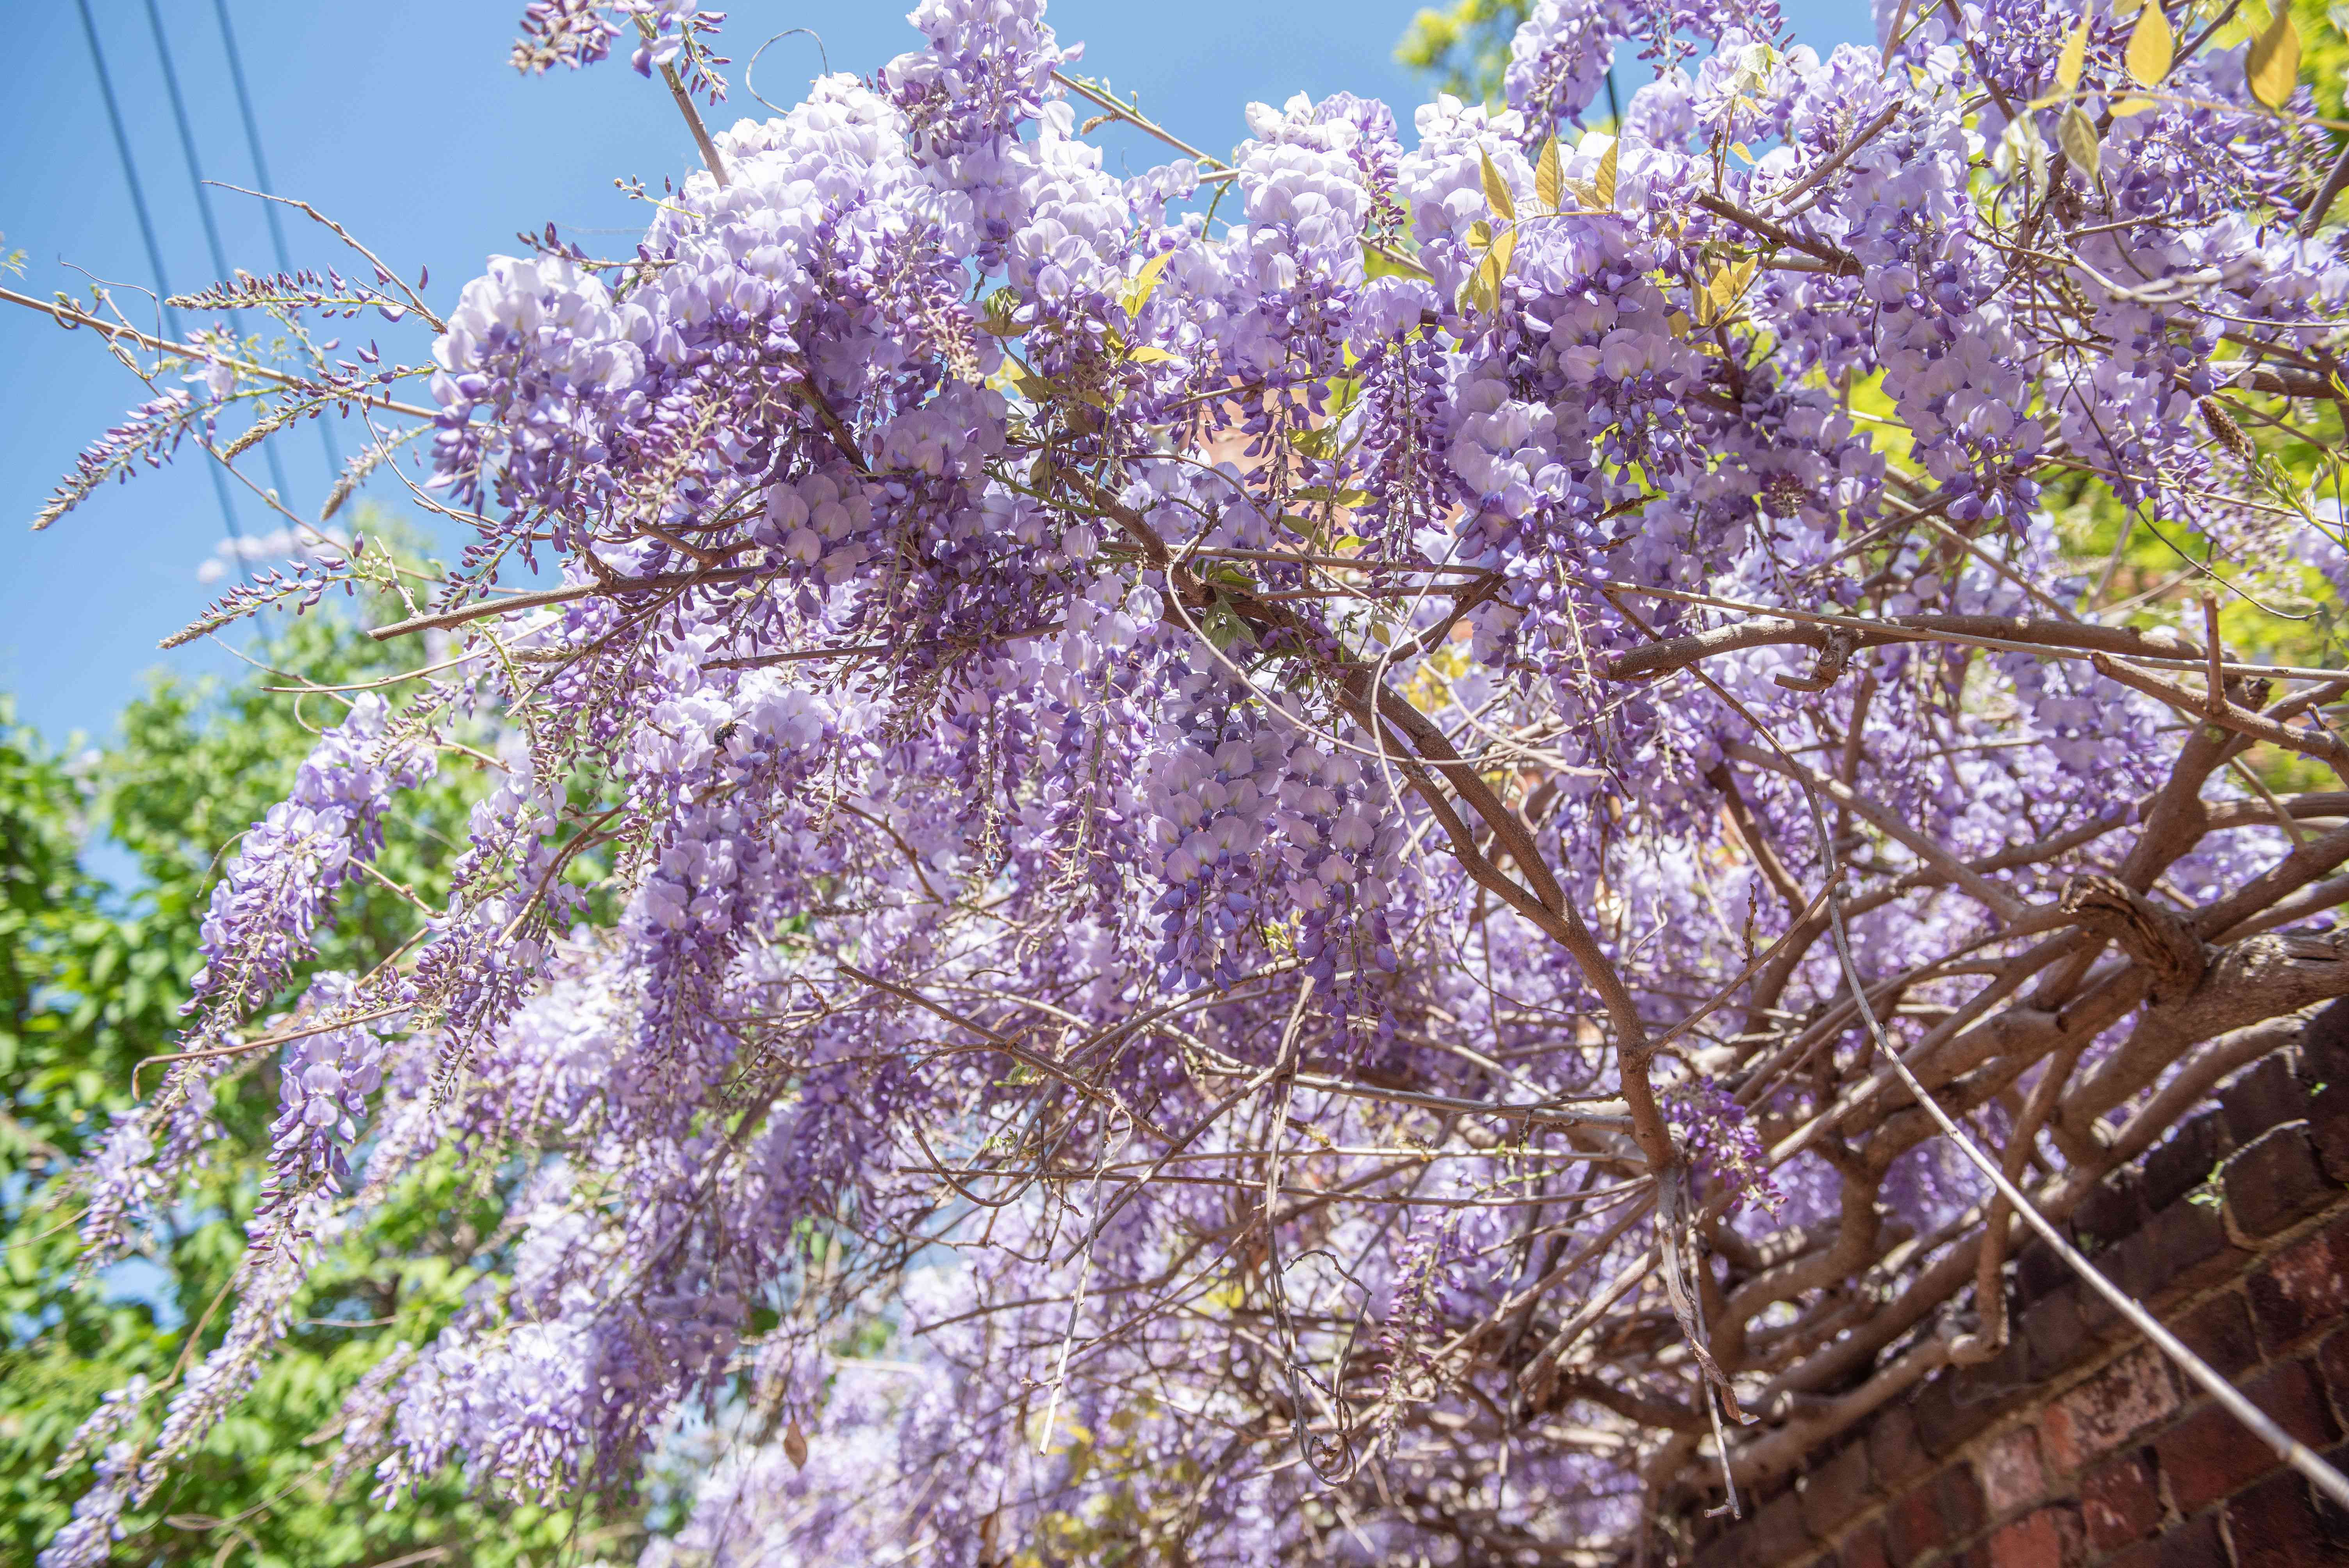 Wisteria shrub vines with light purple flowers on drooping stems